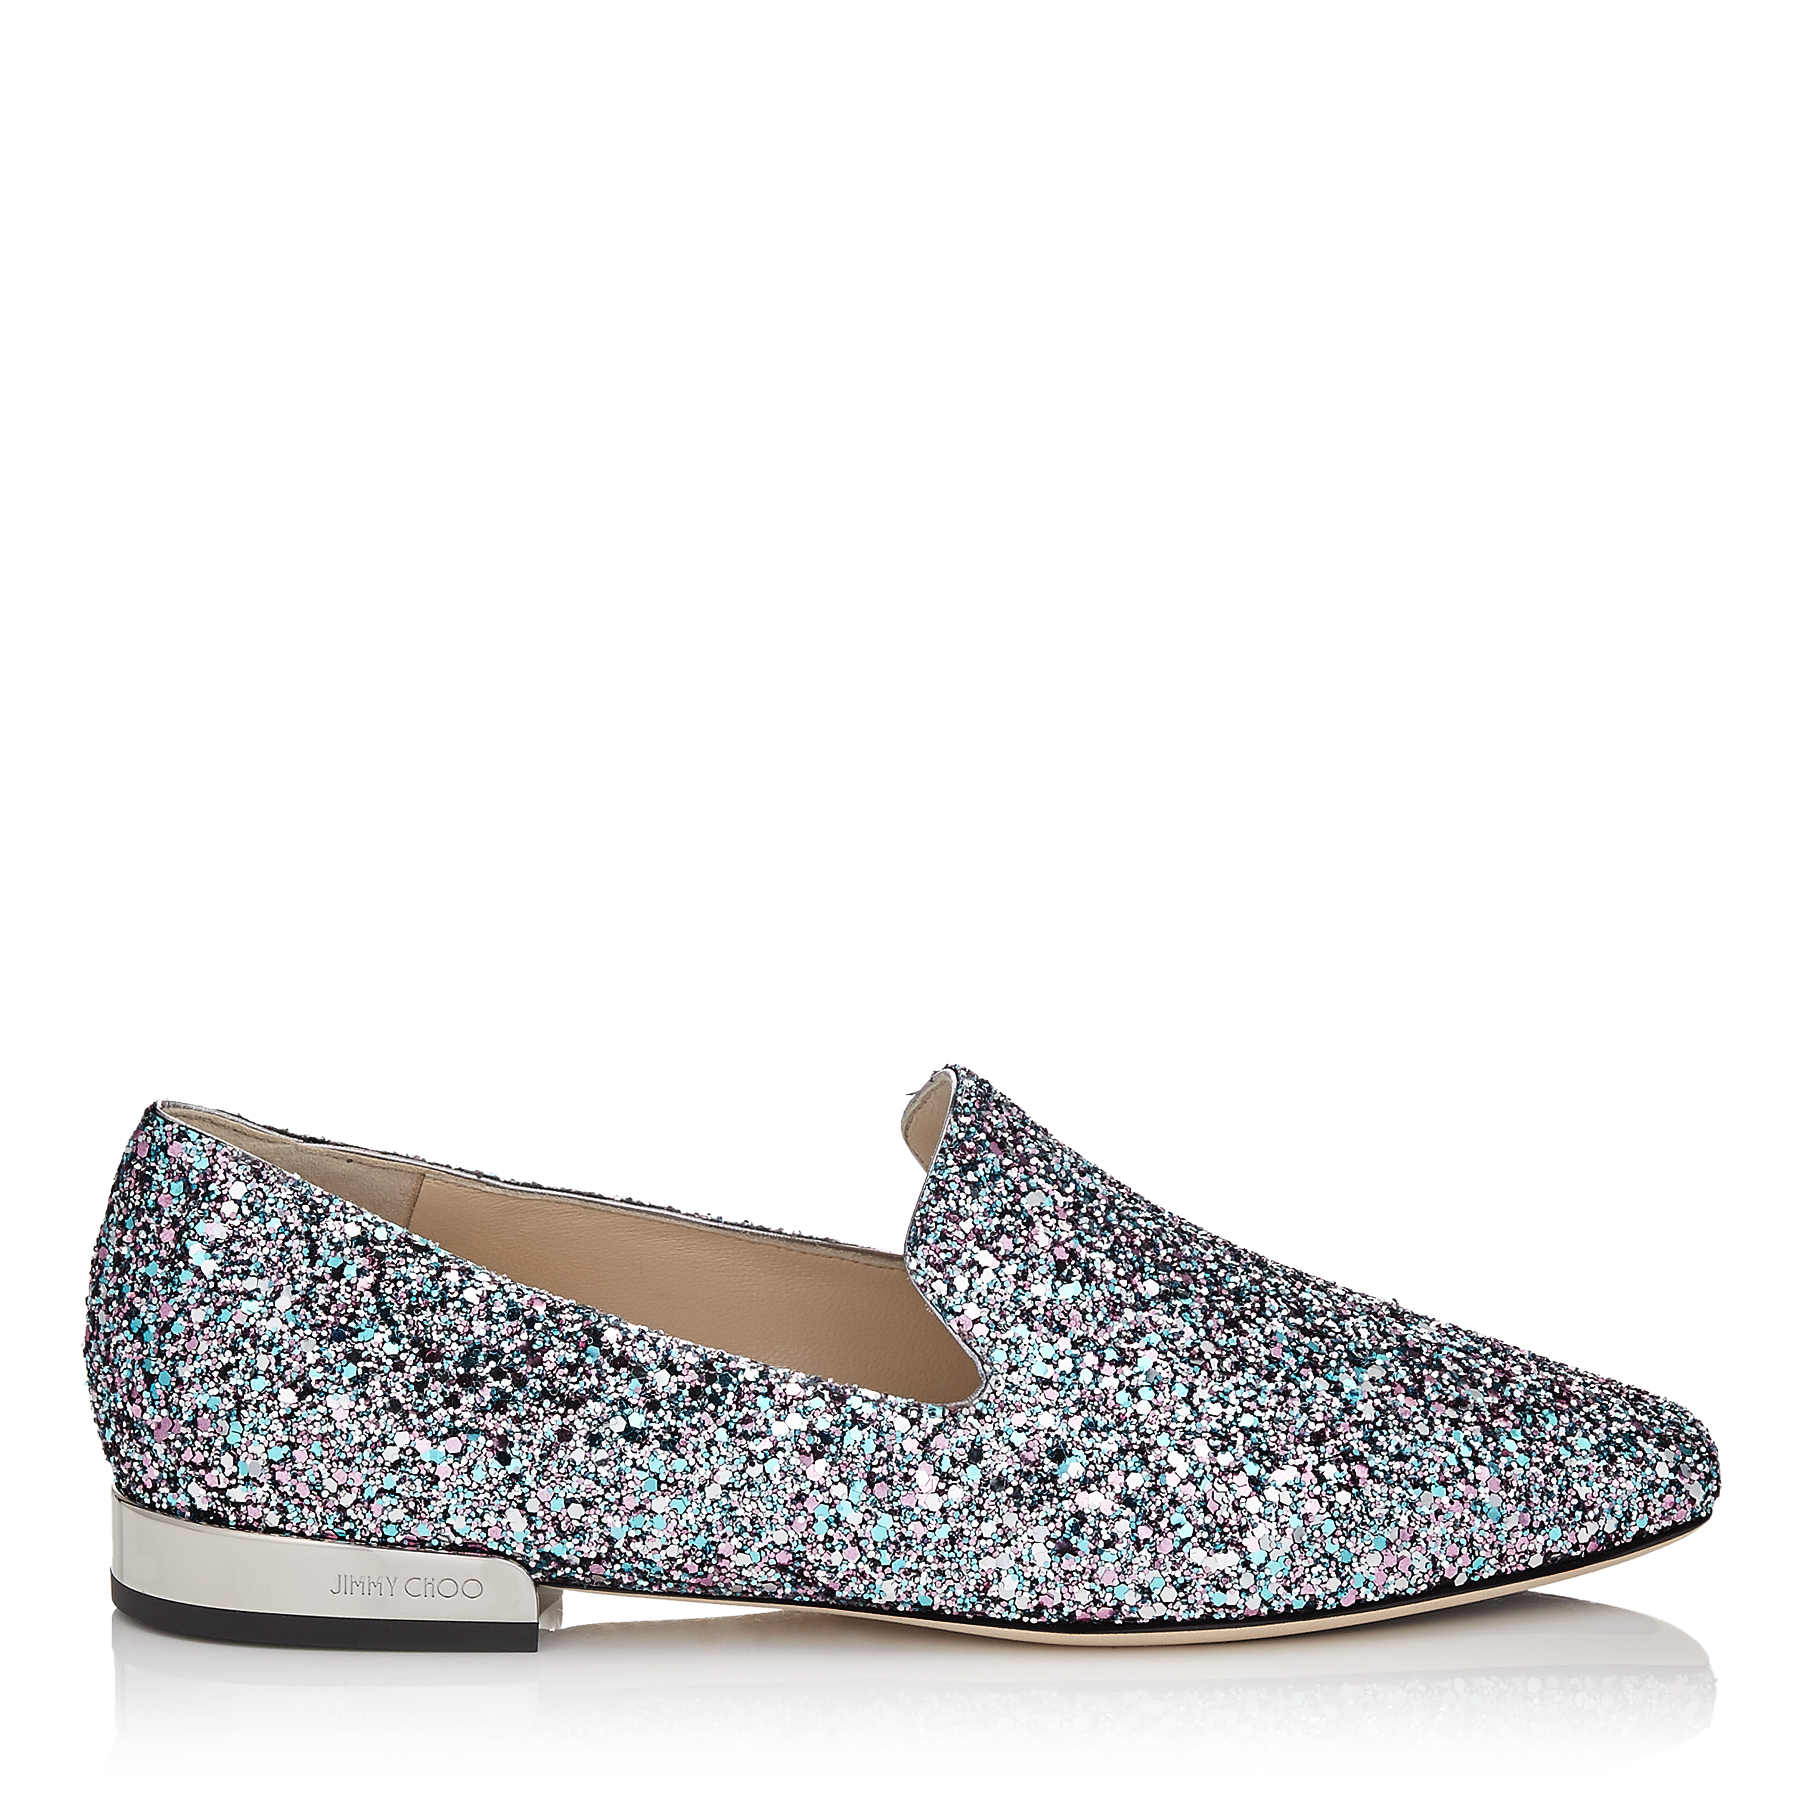 JAIDA FLAT Bubblegum Coarse Glitter Fabric Square Toe Slippers by Jimmy Choo